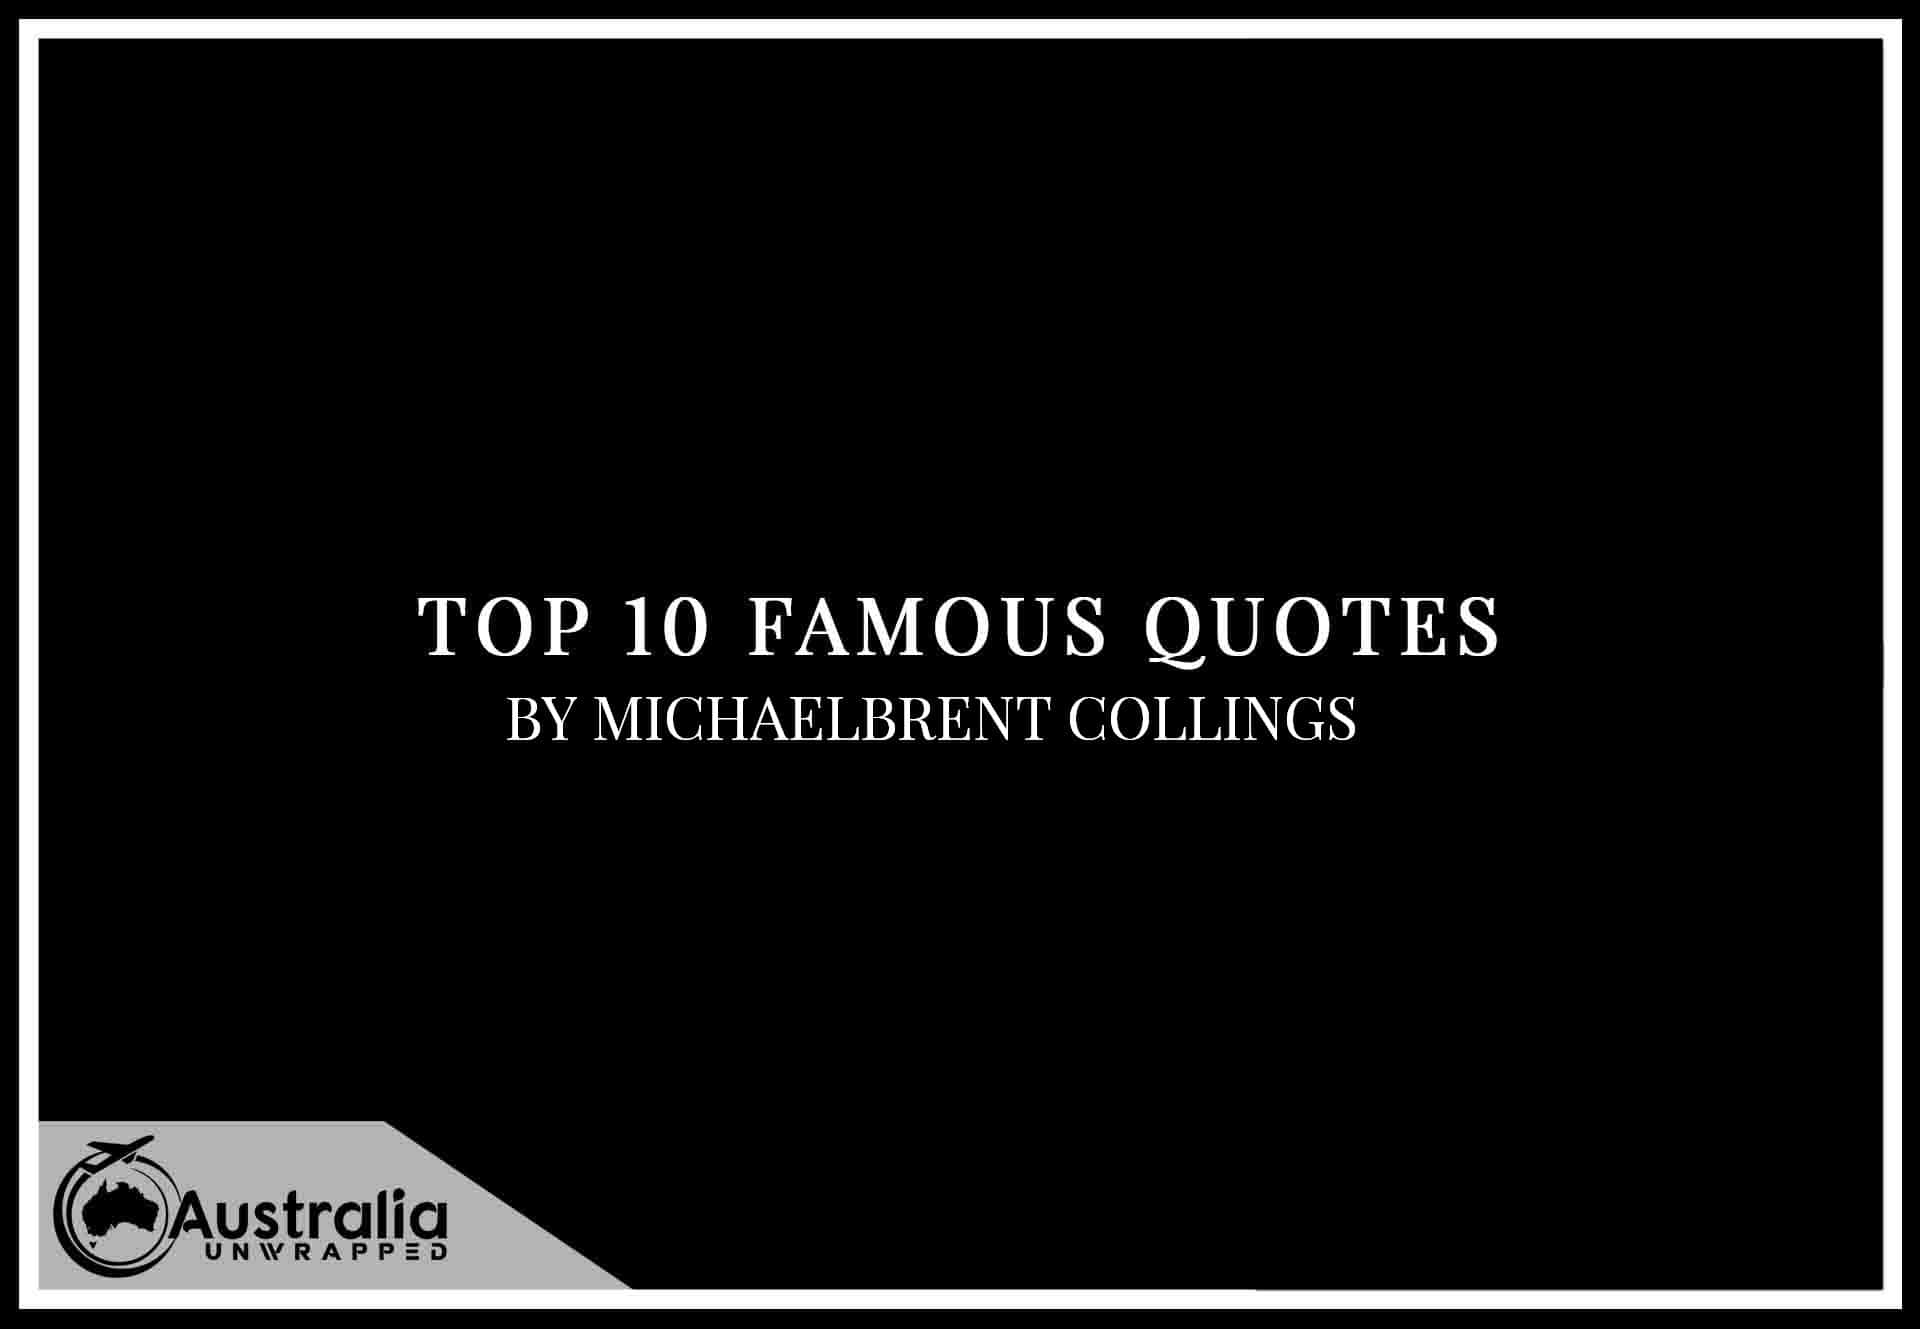 Top 10 Famous Quotes by Author Michaelbrent Collings